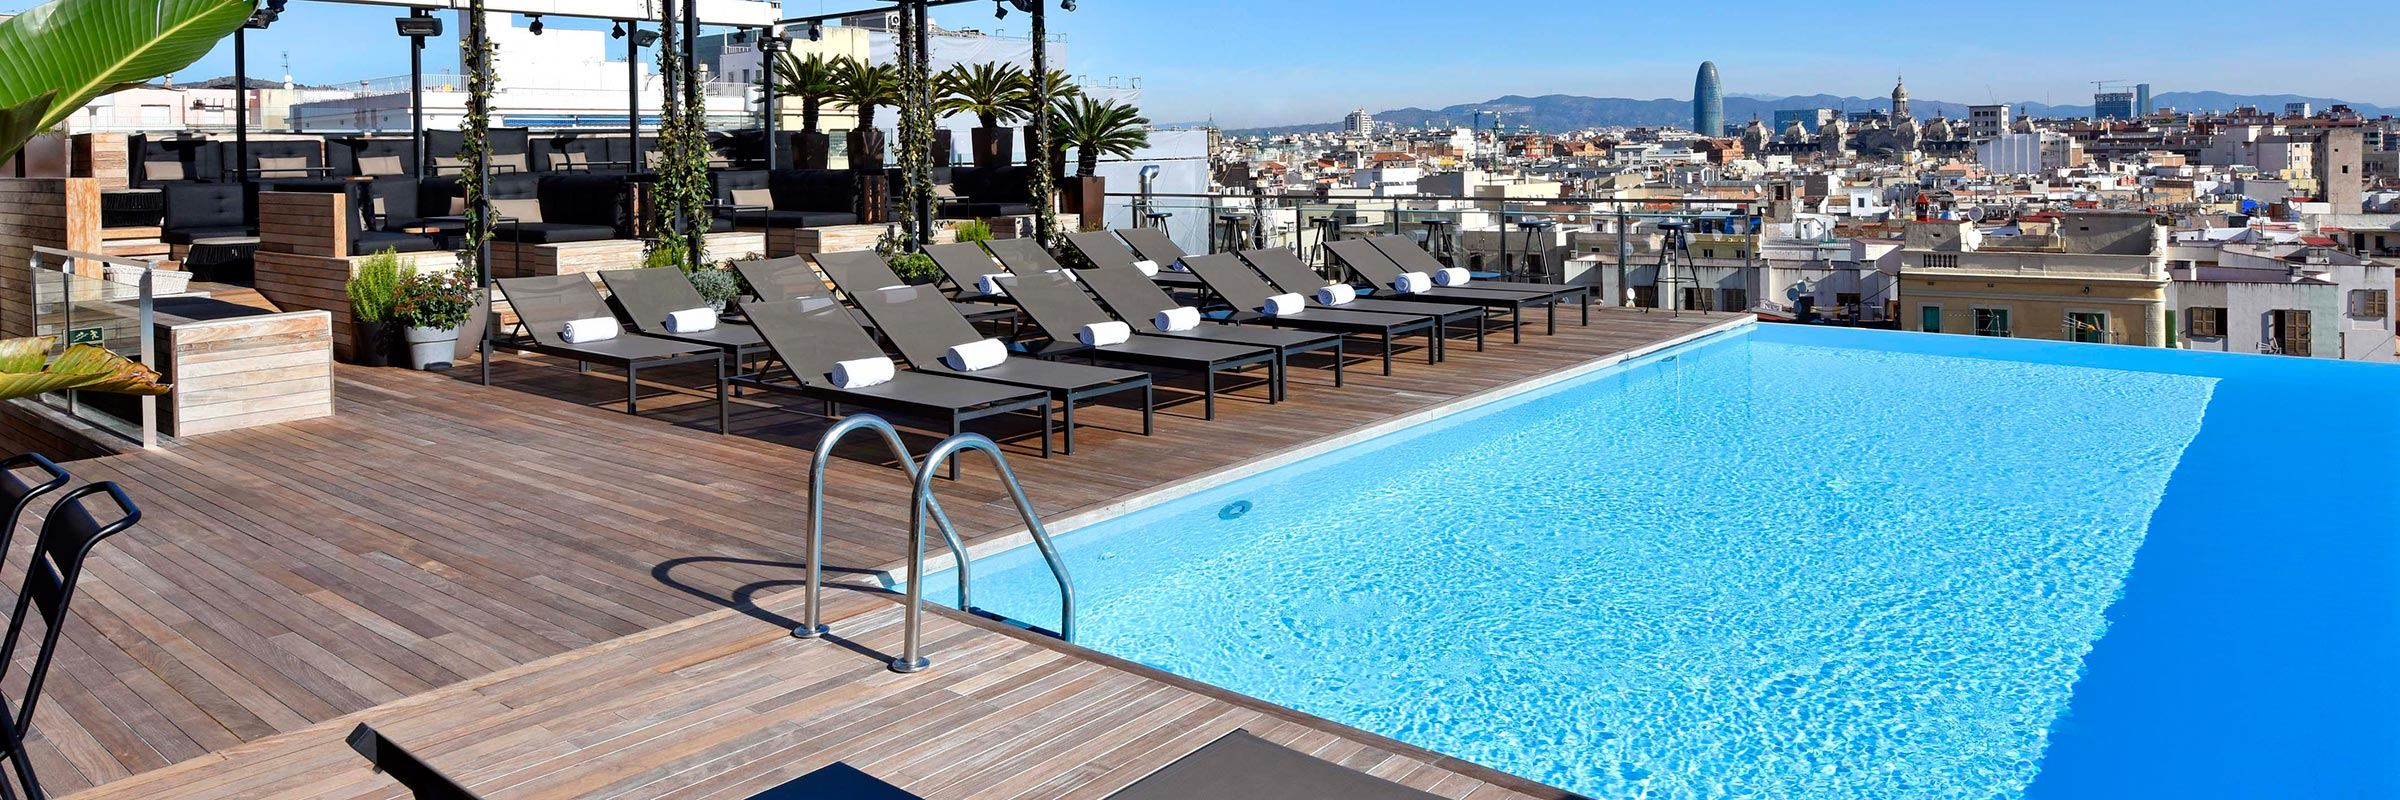 Grand Hotel Central Barcelona Grand Hotel Central Barcelona | Audley Travel